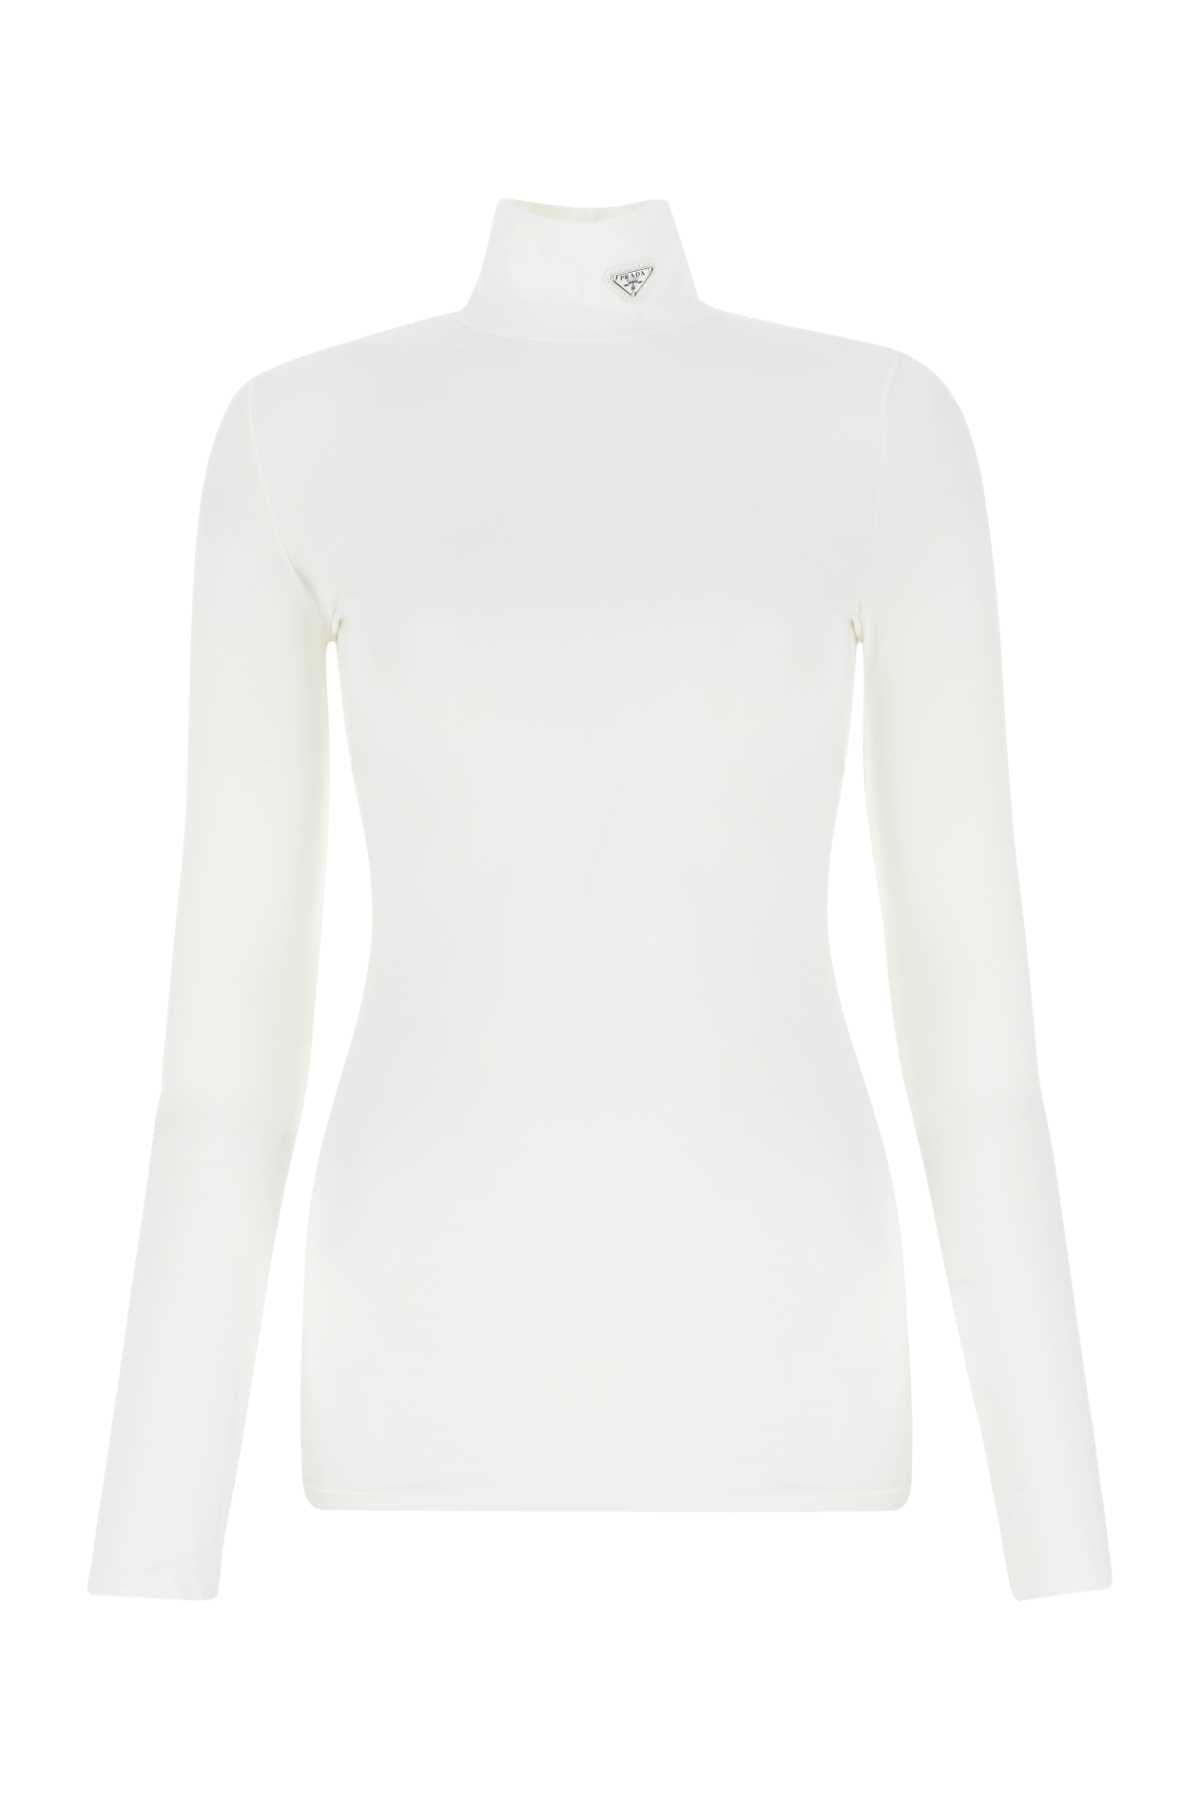 Prada PRADA LOGO PLAQUE HIGH NECK TOP